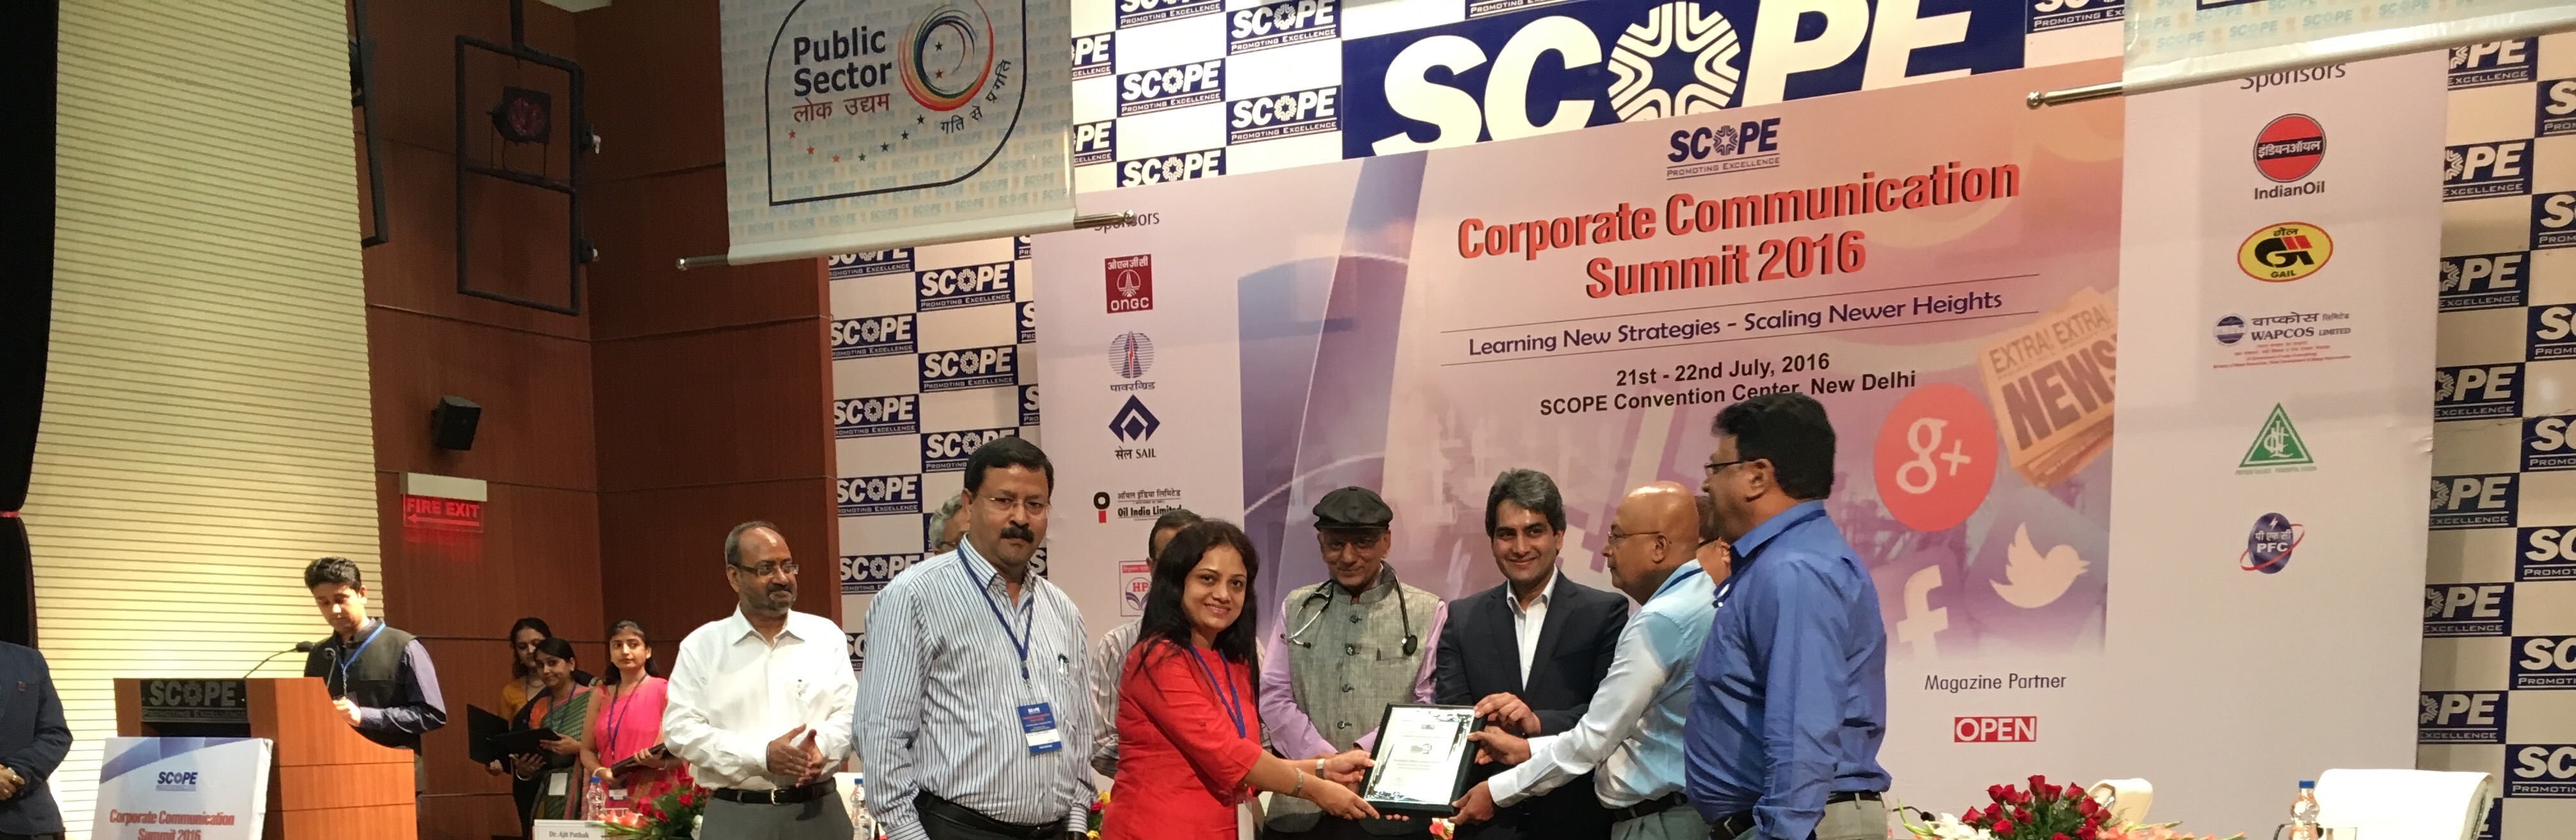 SCOPE Corporate Communication Excellence award